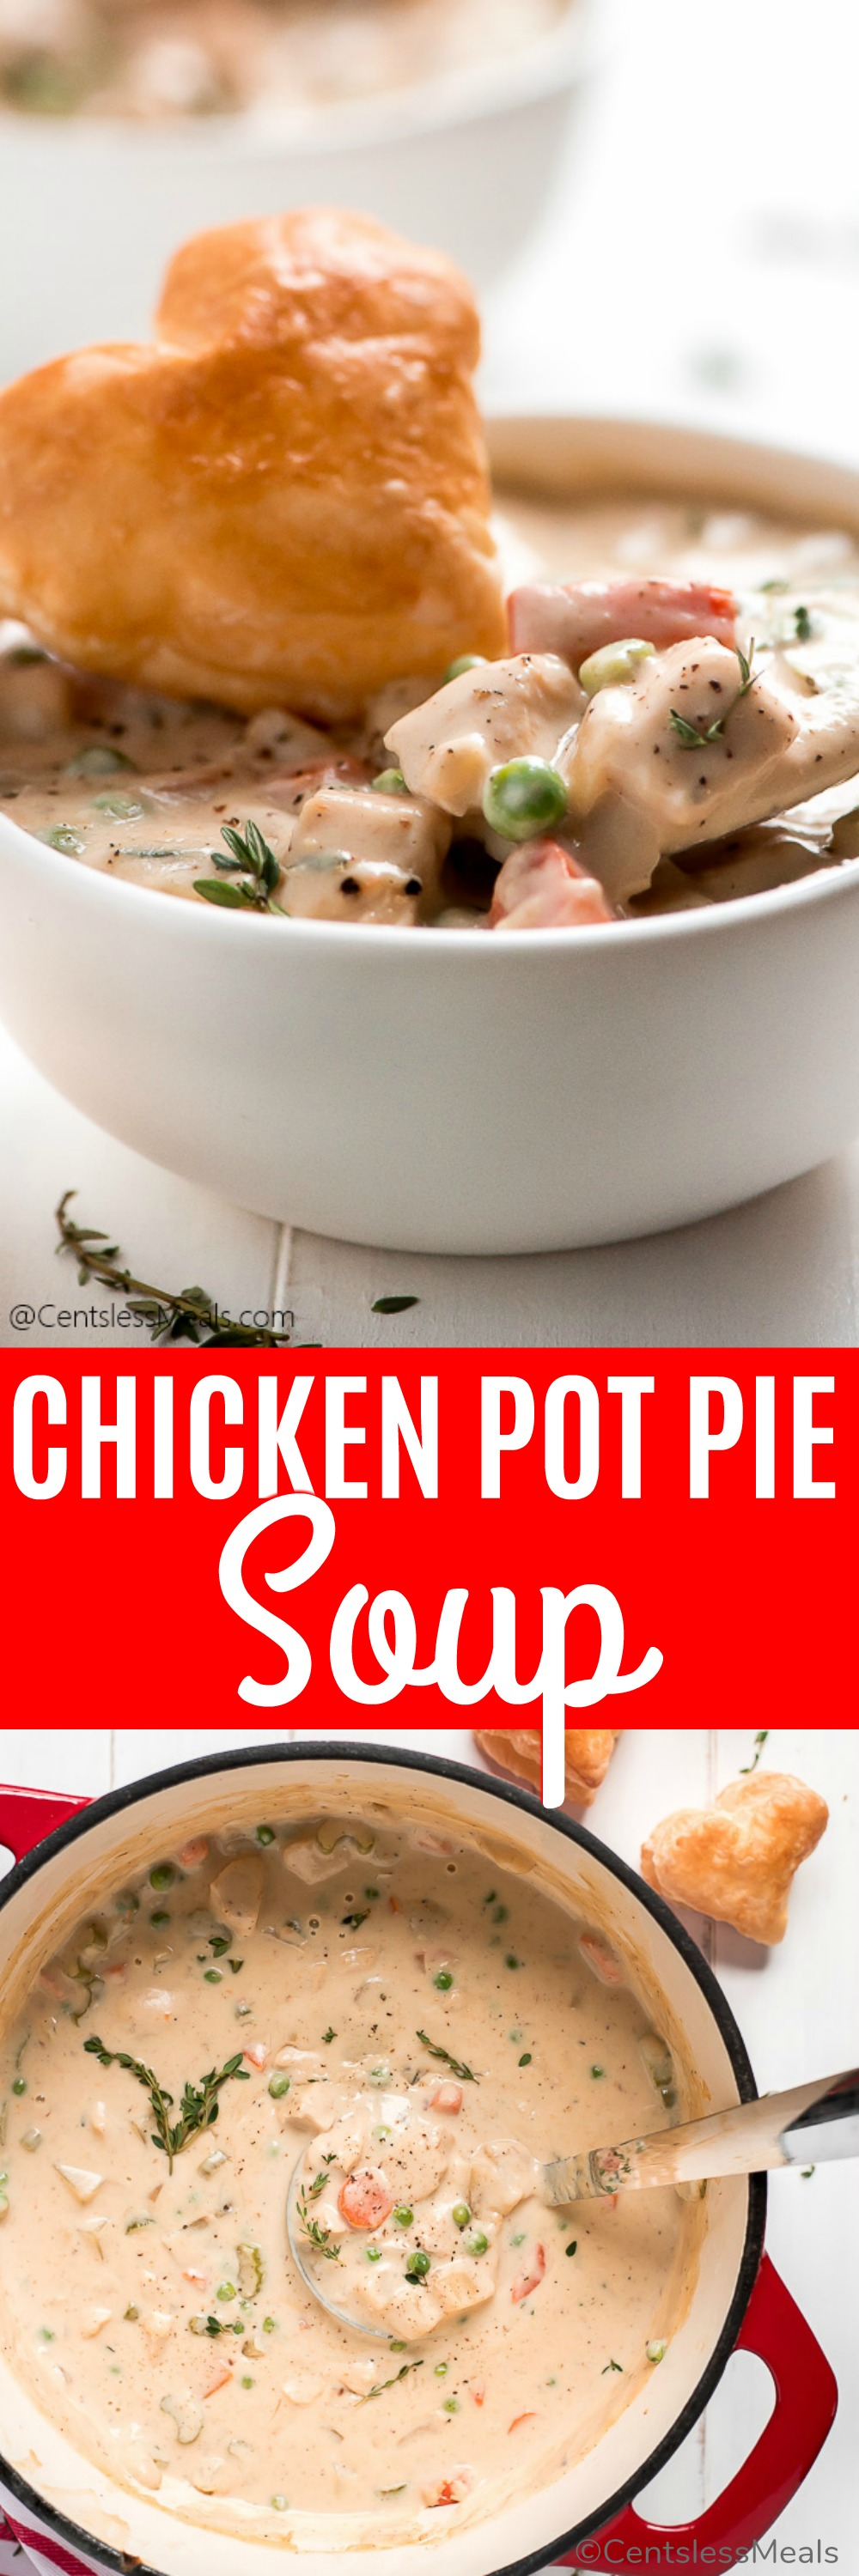 Chicken Pot Pie Soup is so easy to make or to heat up and enjoy as leftovers. Made with carrots, celery, onions, potatoes, and chicken all smothered in a creamy broth, it is a hearty soup that will satisfy even the biggest appetites. #centslessmeals #easysoup #easyrecipe #fallrecipes #chickenrecipe #souprecipe #creamysoup #withchicken #withvegetables #comfortfood